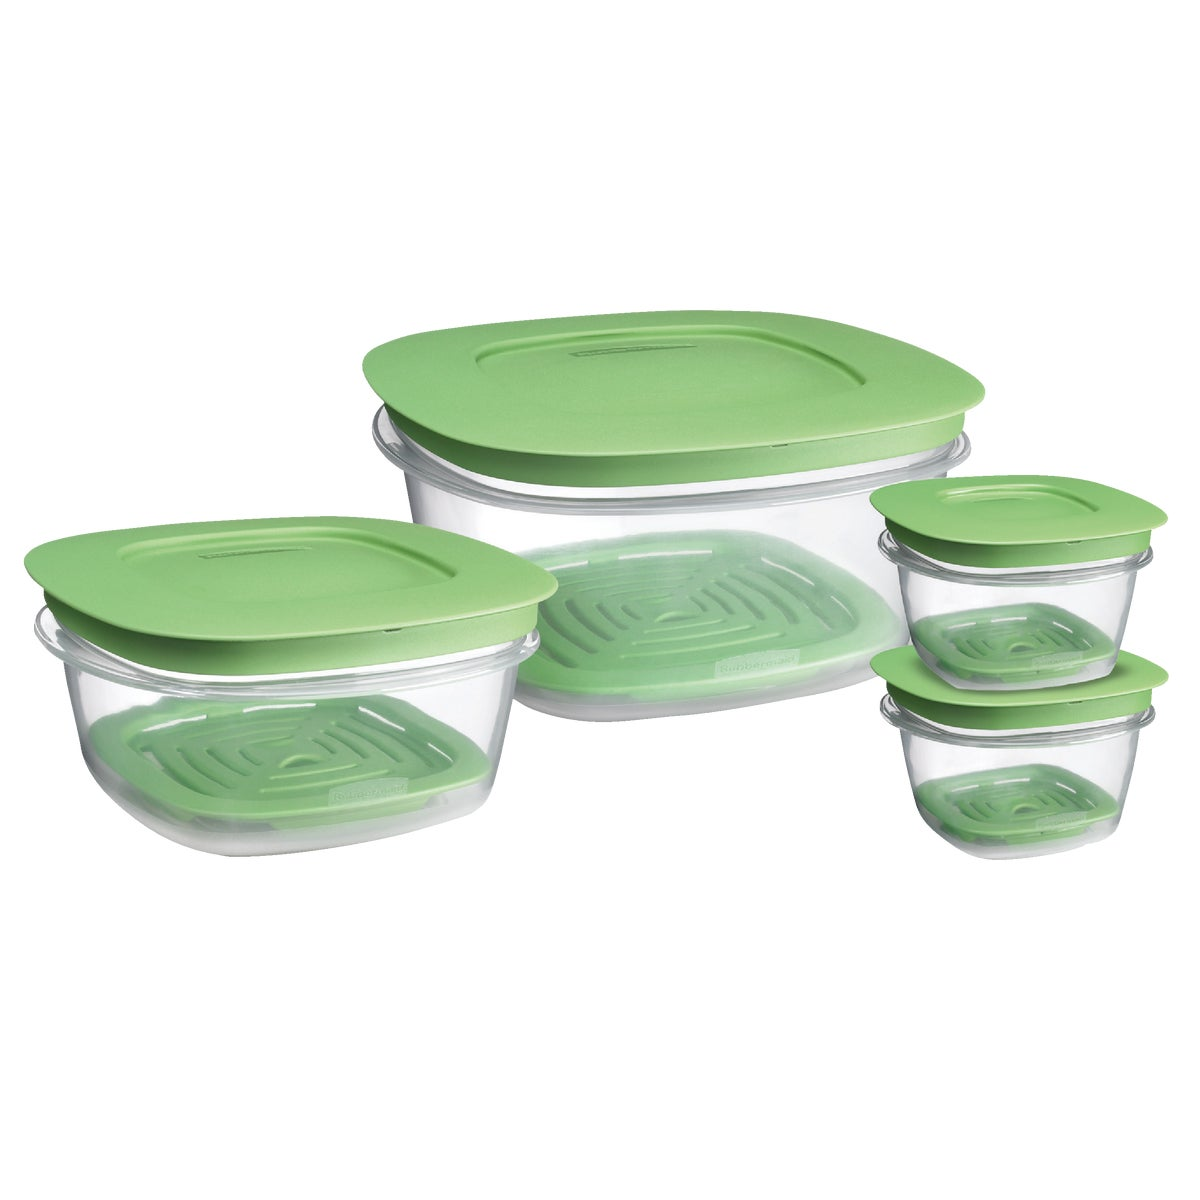 PRODUCE SAVR STORAGE SET - 7J9300FRESH by Rubbermaid Home